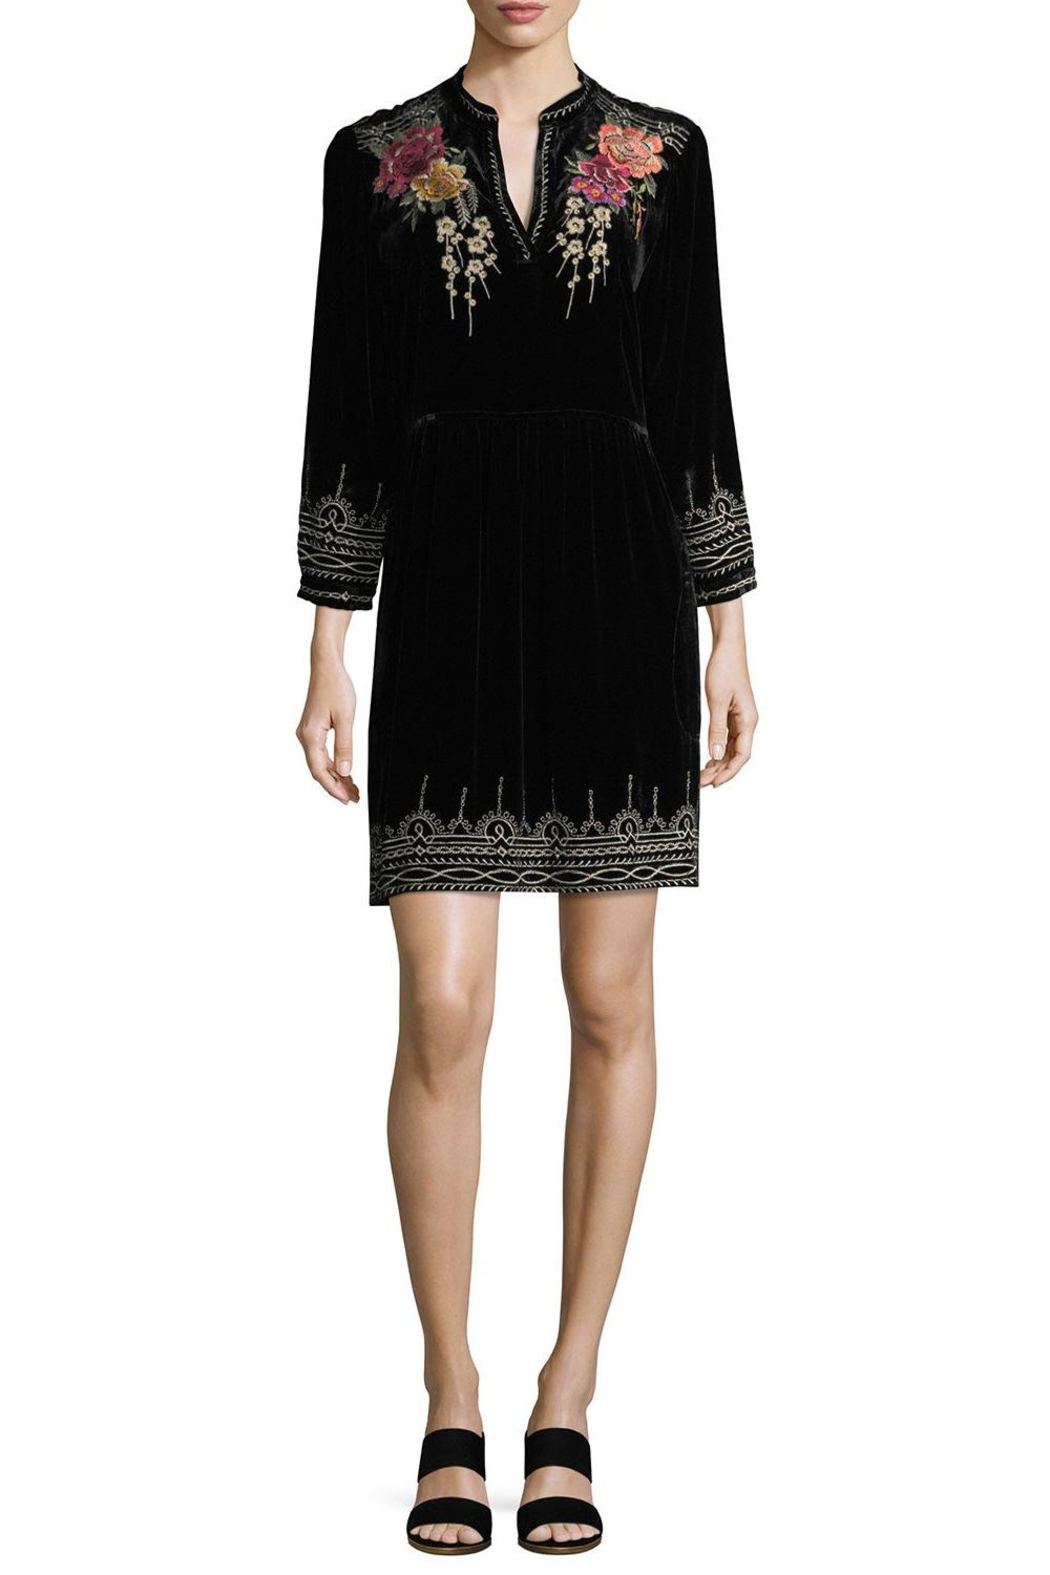 Johnny Was Velvet Embroidered Dress - Main Image